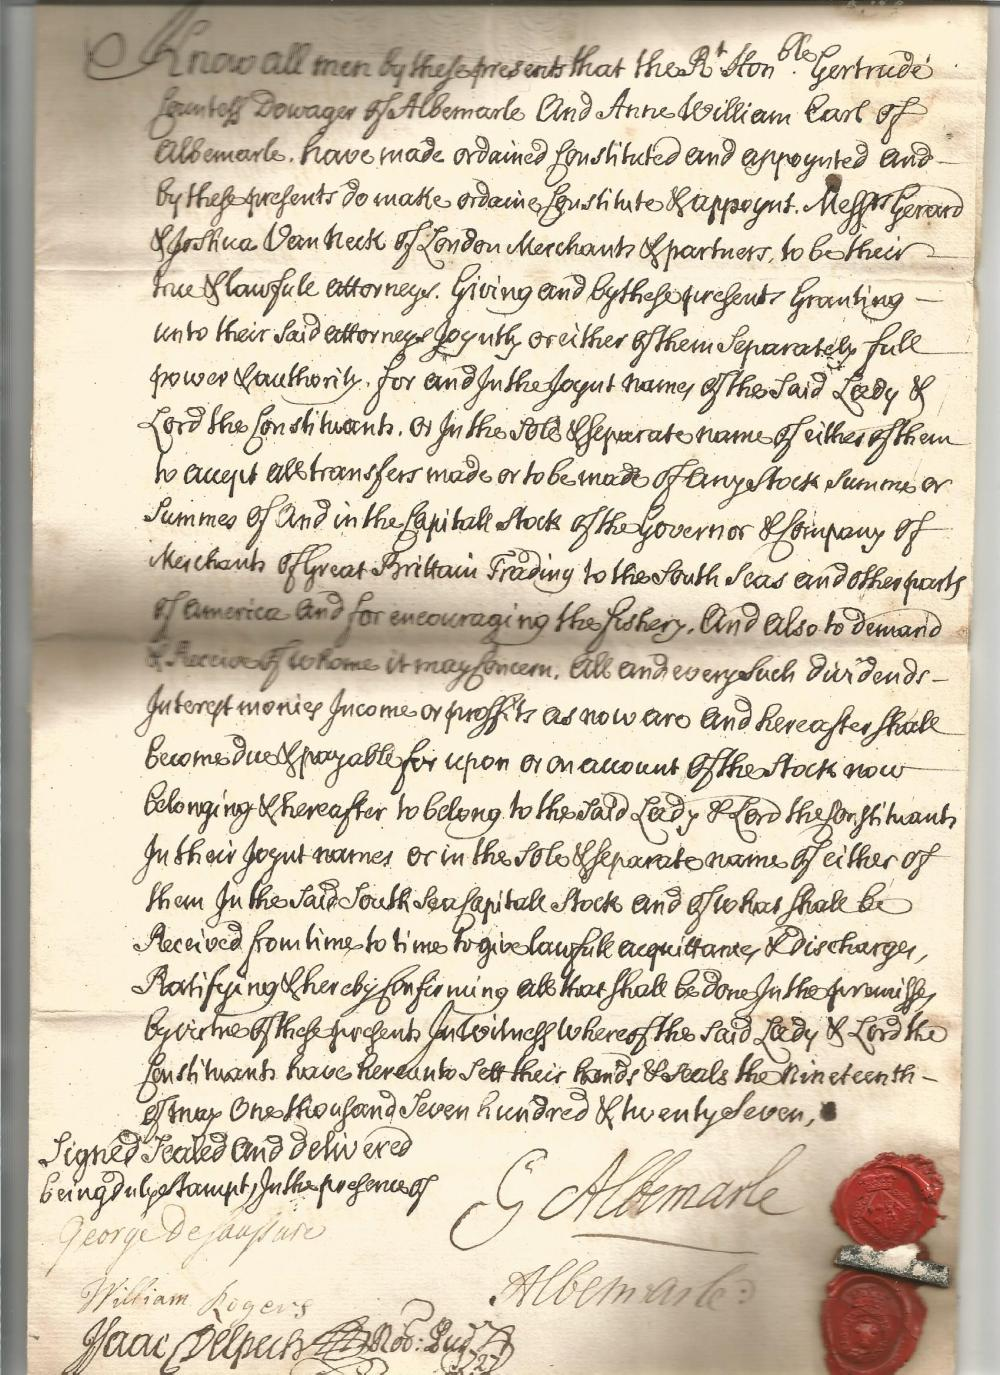 2nd Earl of Albermarle - Willem von Keppel (1702-1754) document signed by him and his mother Dawoger